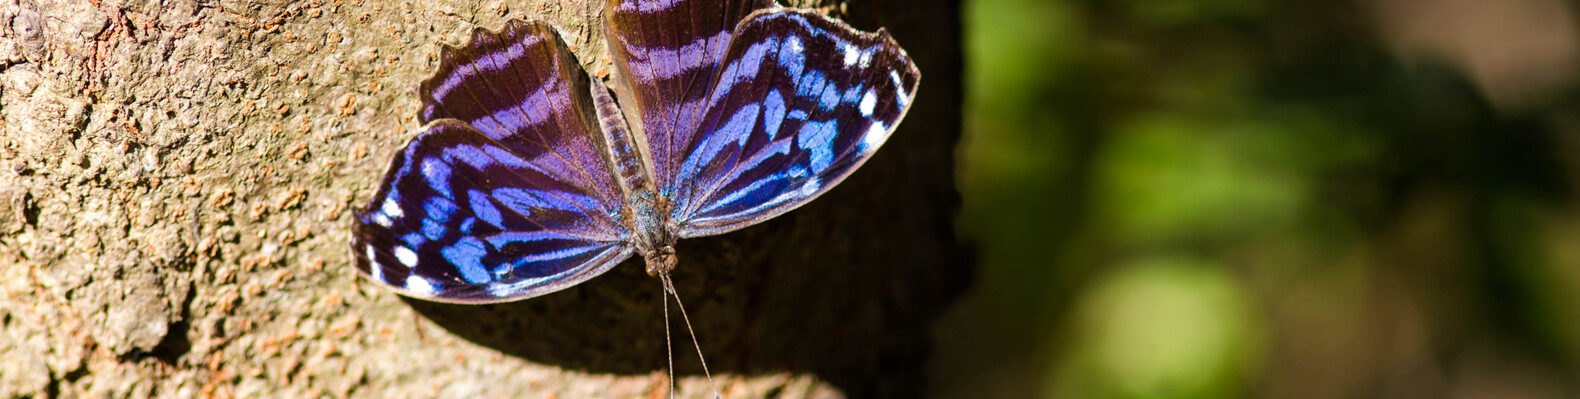 Mexican bluewing butterfly on a tree